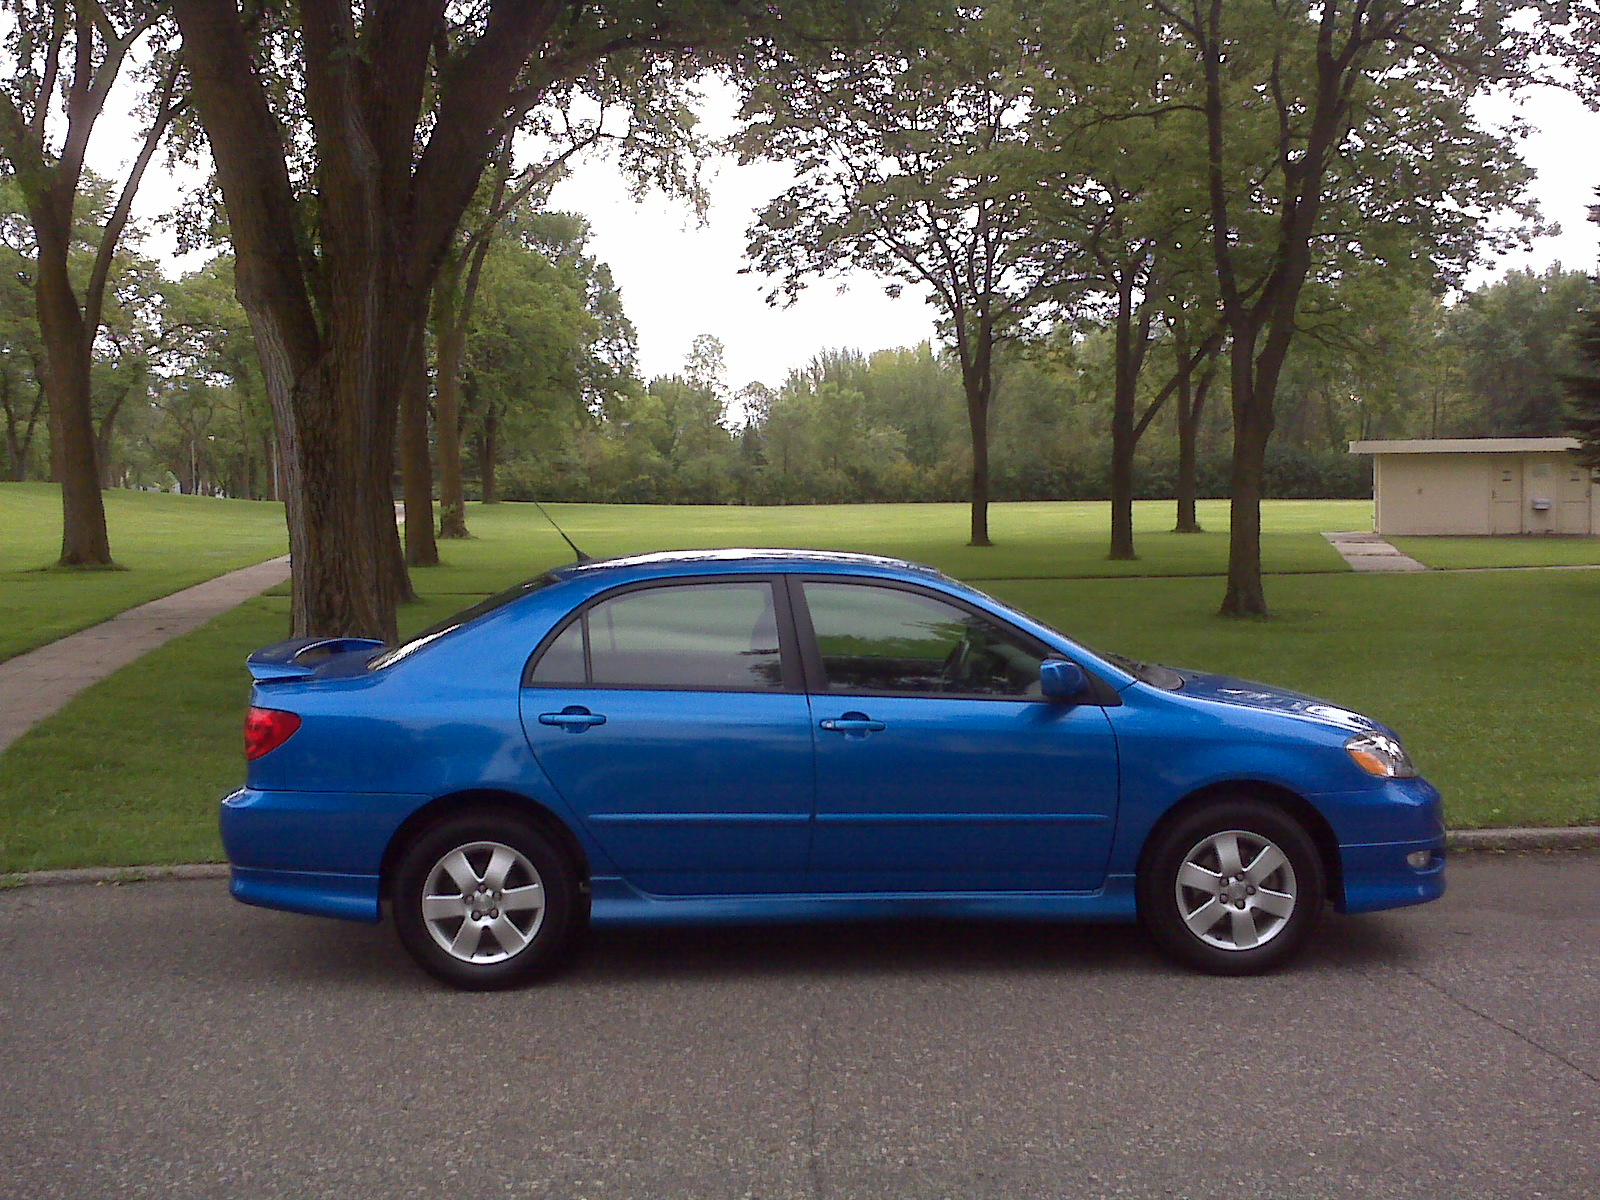 Photograph of a 2008 Corolla S taken on 20 August 2010